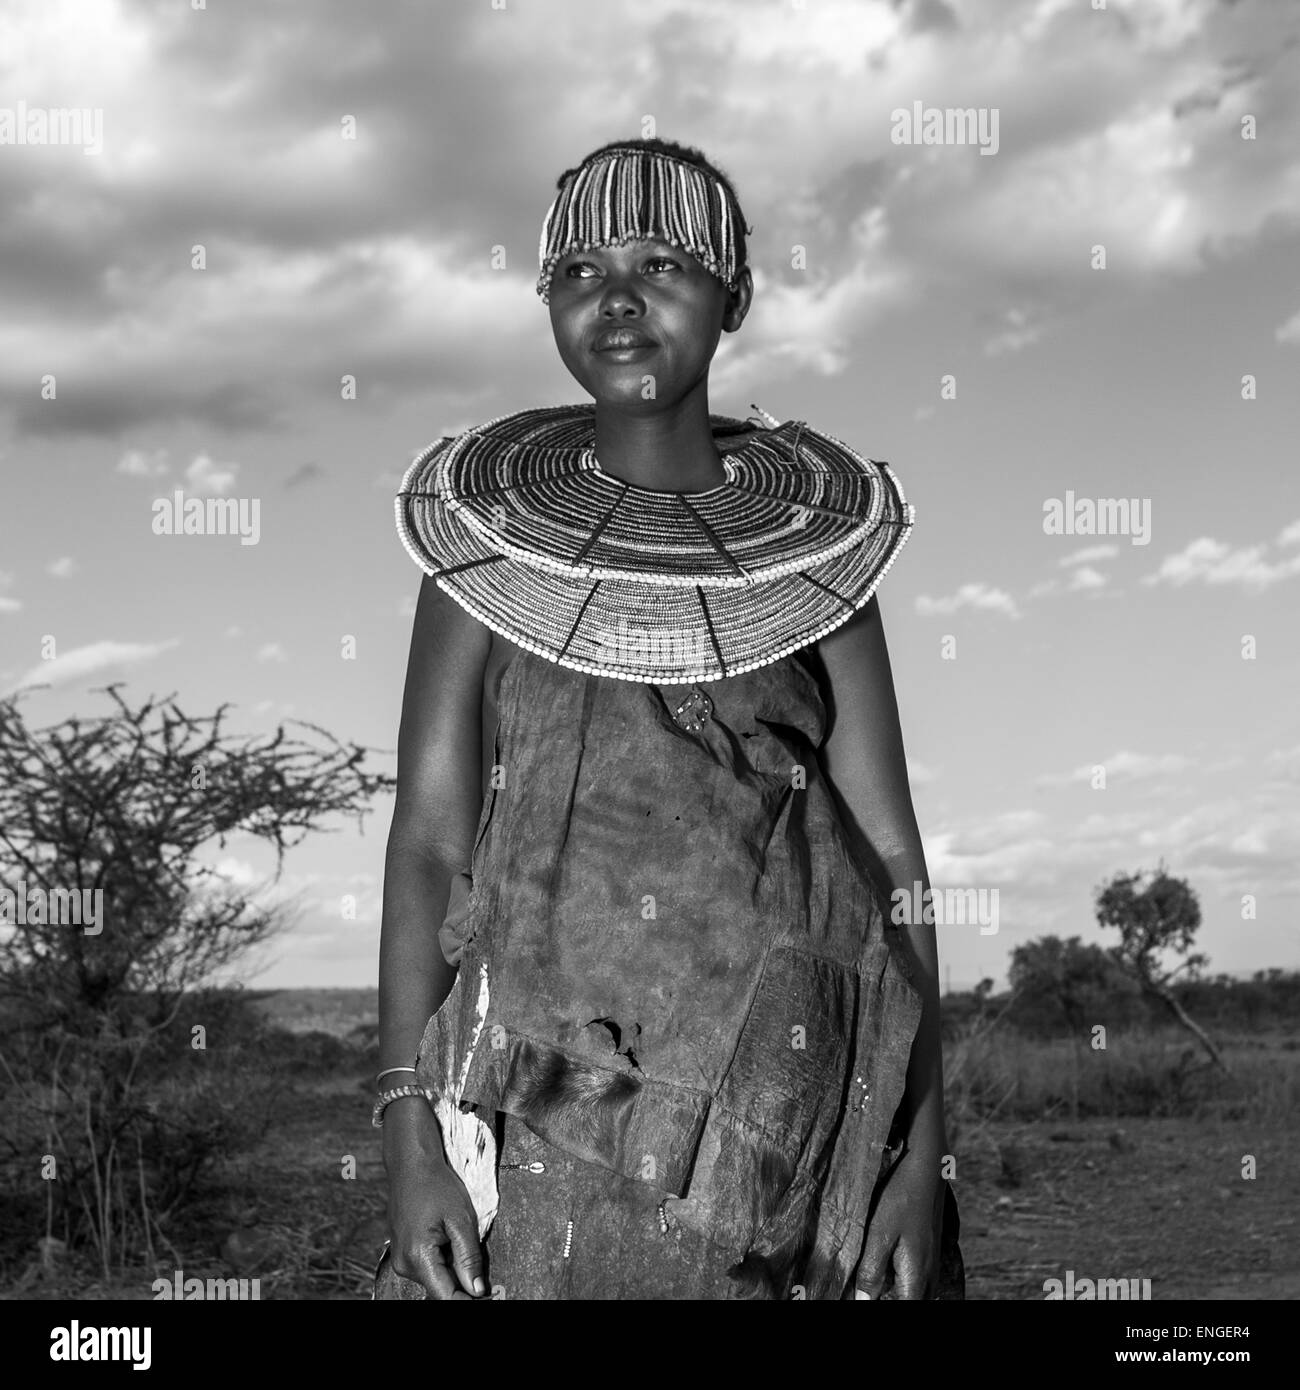 A Pokot Woman Wears Large Necklaces Made From The Stems Of Sedge Grass, Baringo County, Baringo, Kenya - Stock Image